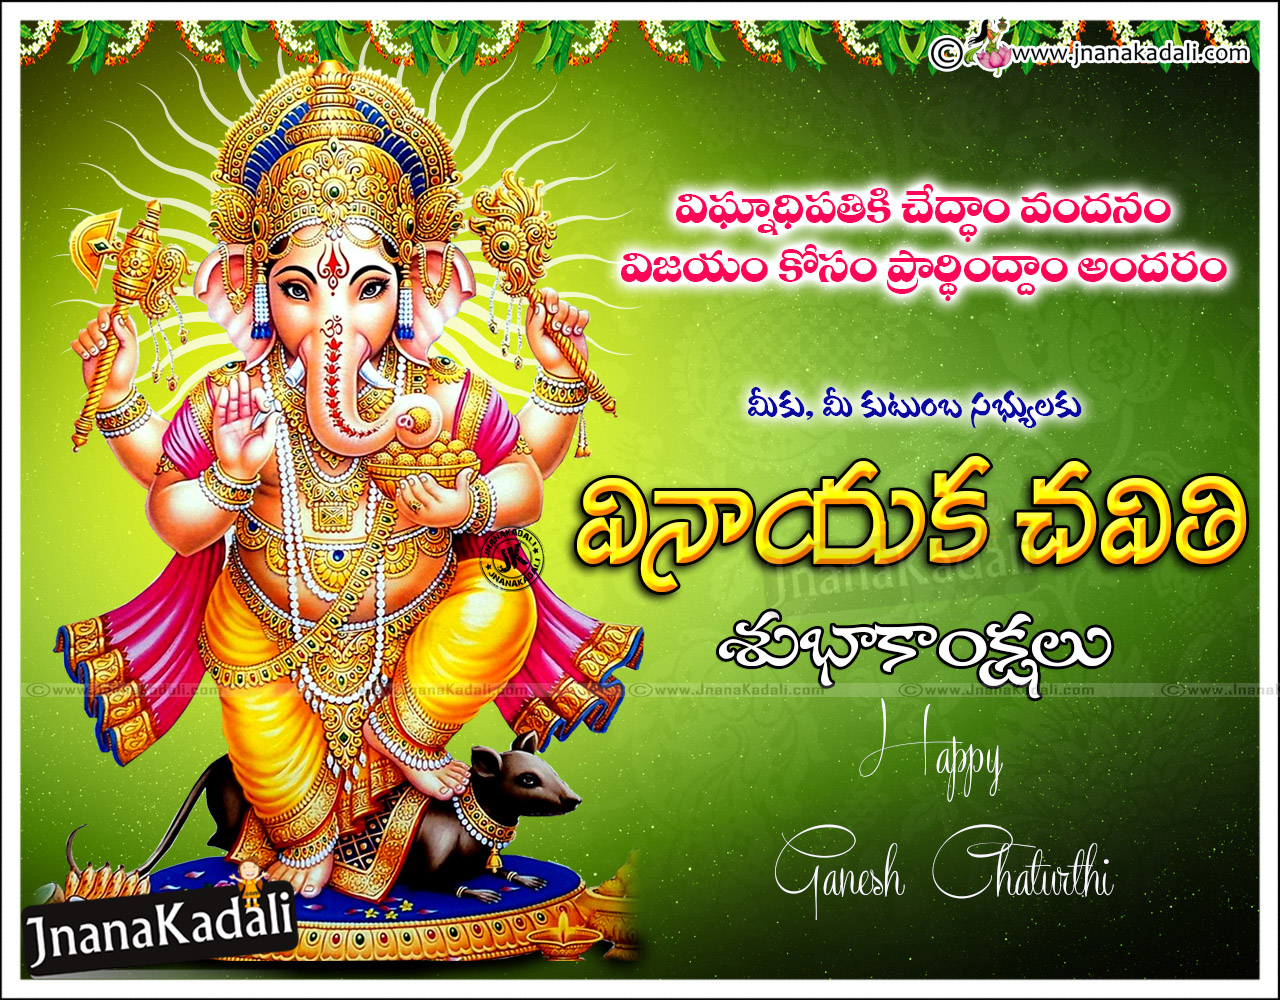 Happy vinayaka chavithi quotes greetings in telugu with ganesh here is a best telugu langauge vinayaka chavithi wishes and messages online most popular and m4hsunfo